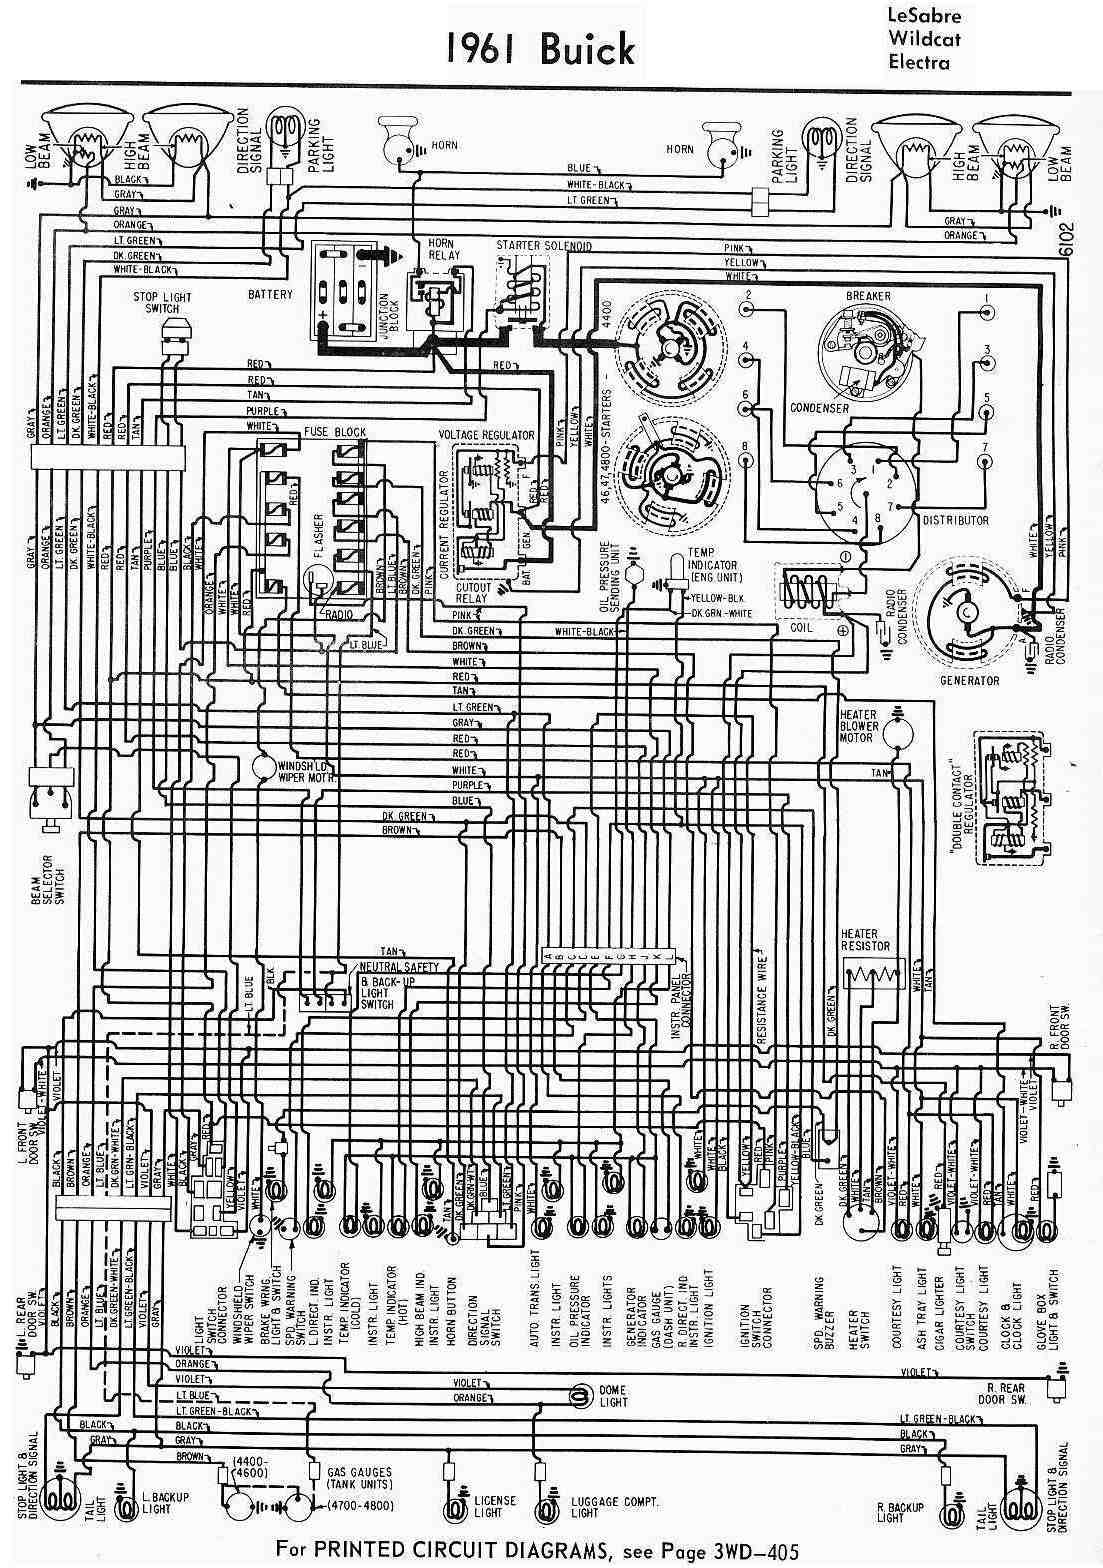 1989 buick electra wiring diagram data diagram schematic1989 buick electra wiring diagram data wiring diagram 1989 [ 1103 x 1568 Pixel ]